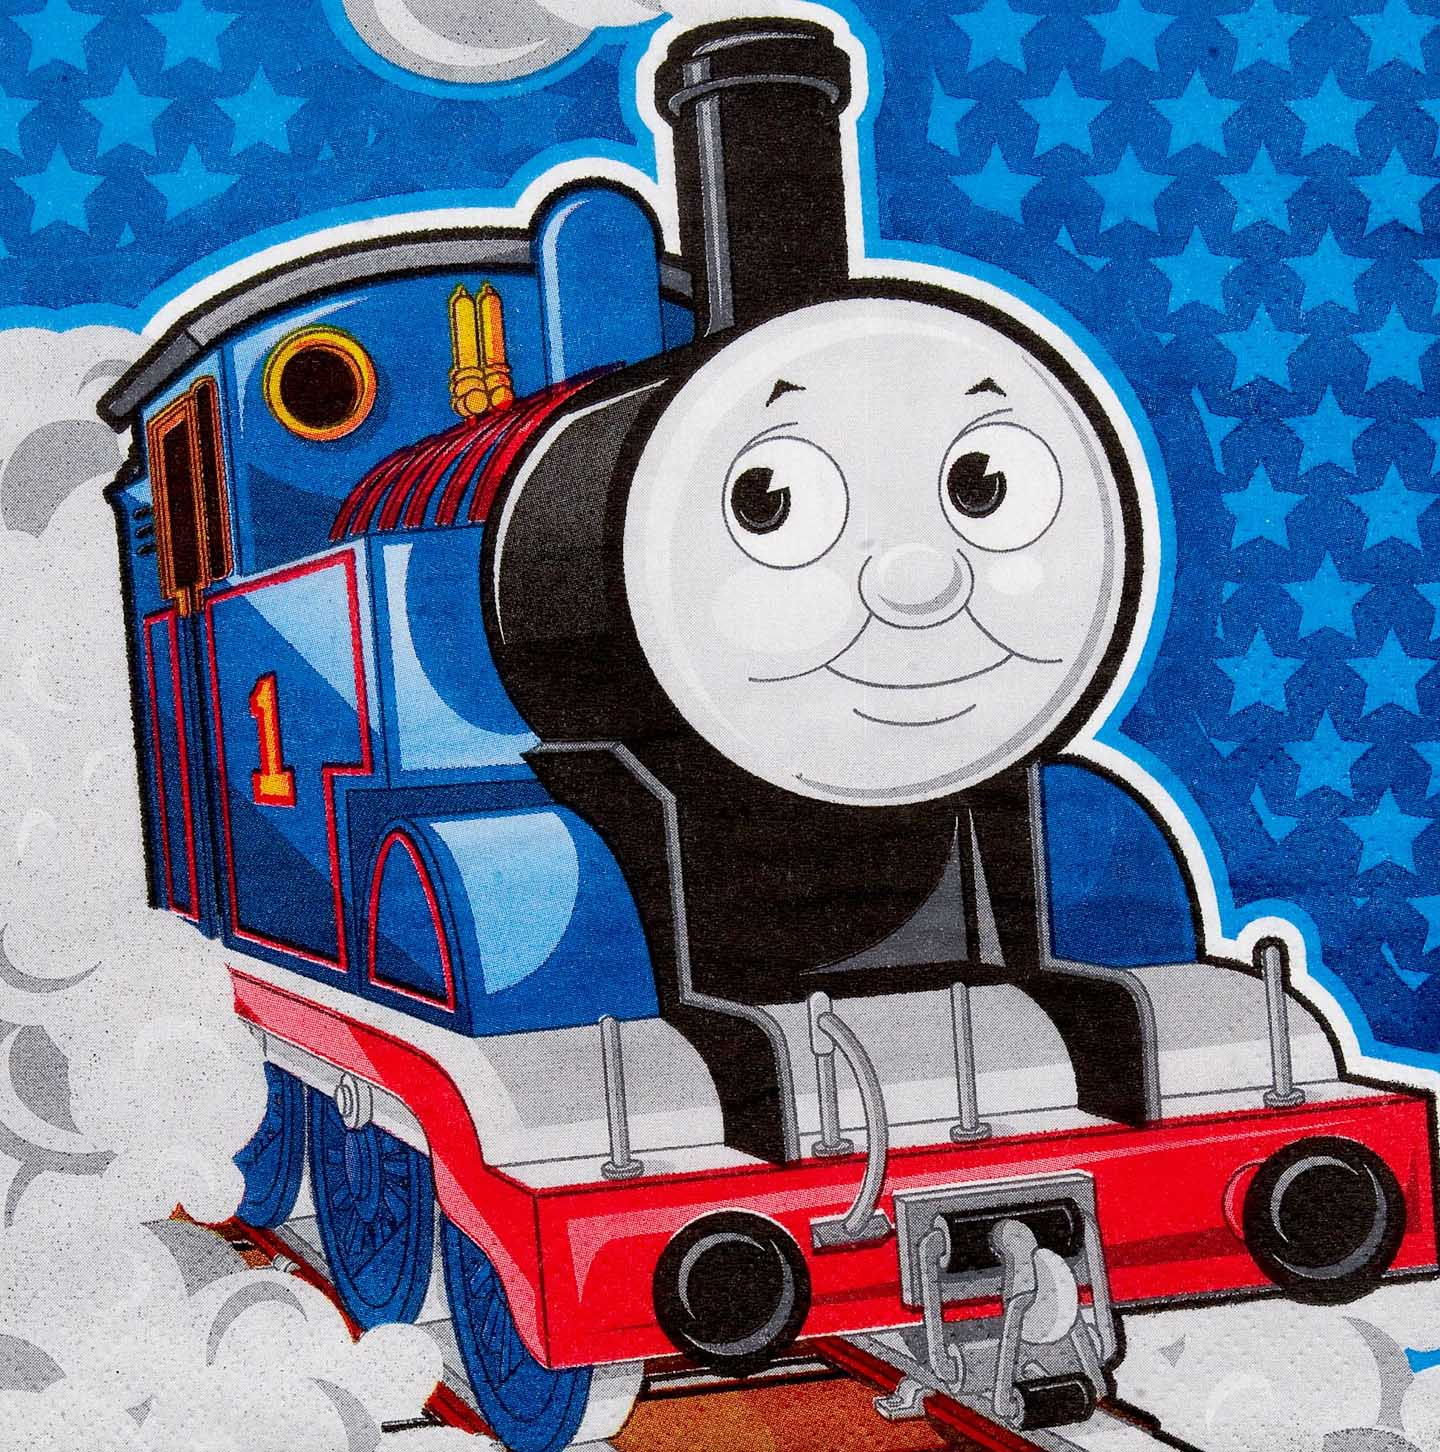 Free Download Disney Automotive Thomas The Tank Engine